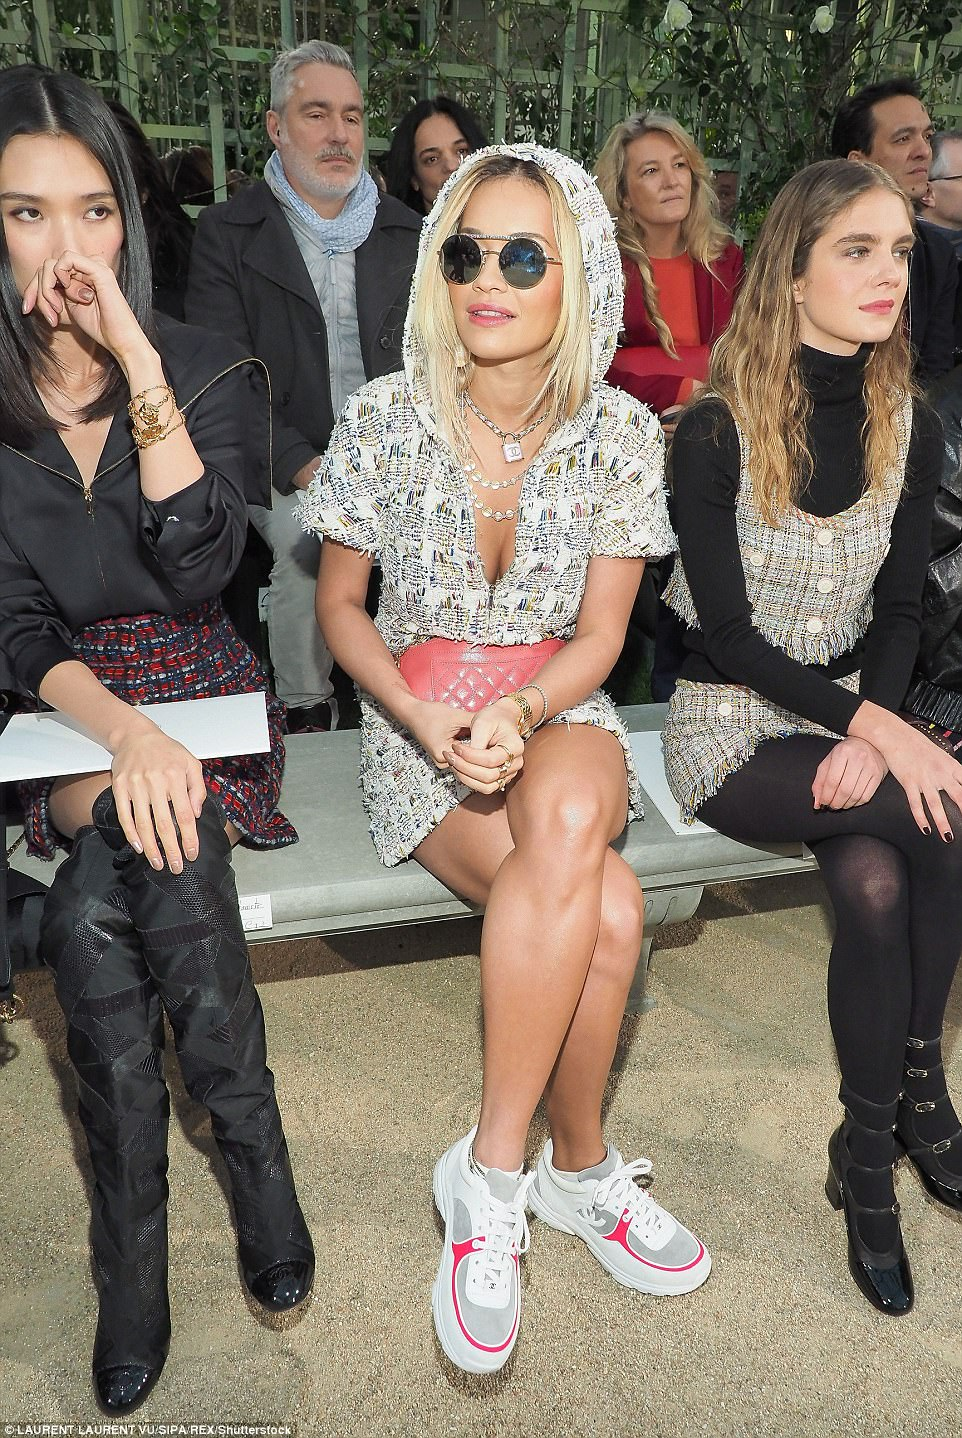 All eyes on her: Rita sat in the FROW among a host of beautifully dressed women and looked sensational